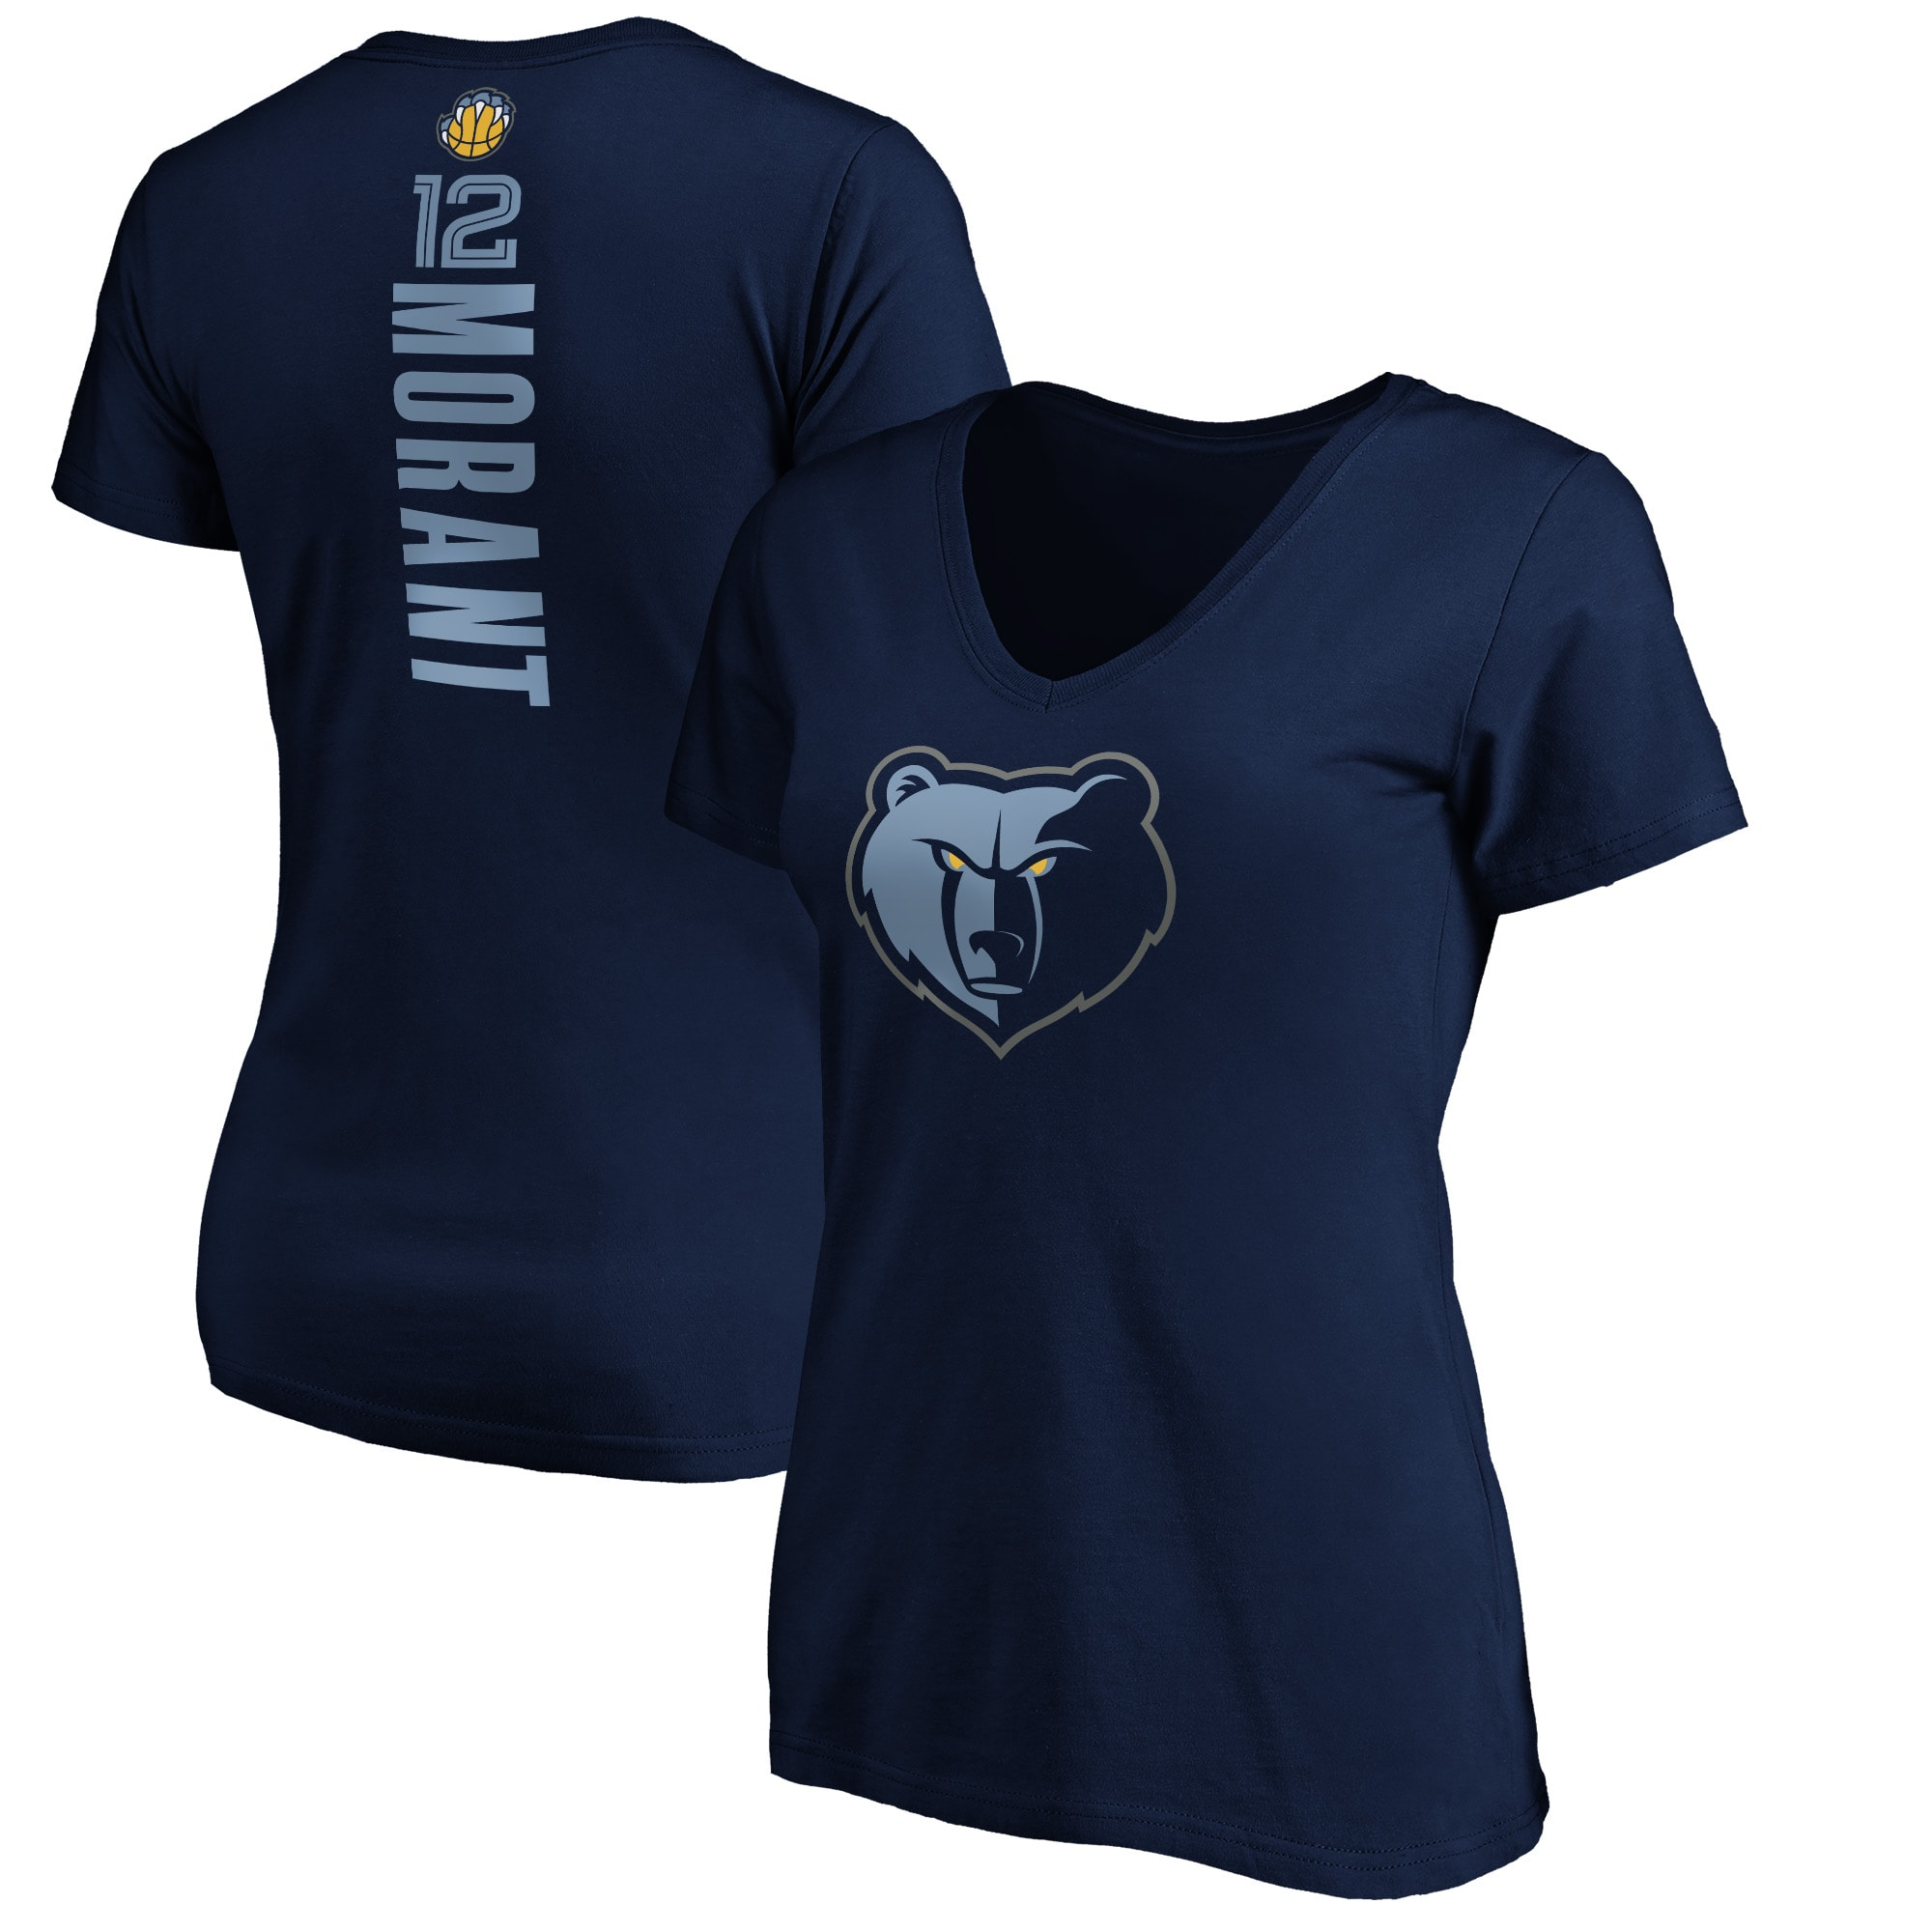 Ja Morant Memphis Grizzlies Fanatics Branded Women's Playmaker Name & Number V-Neck T-Shirt - Navy